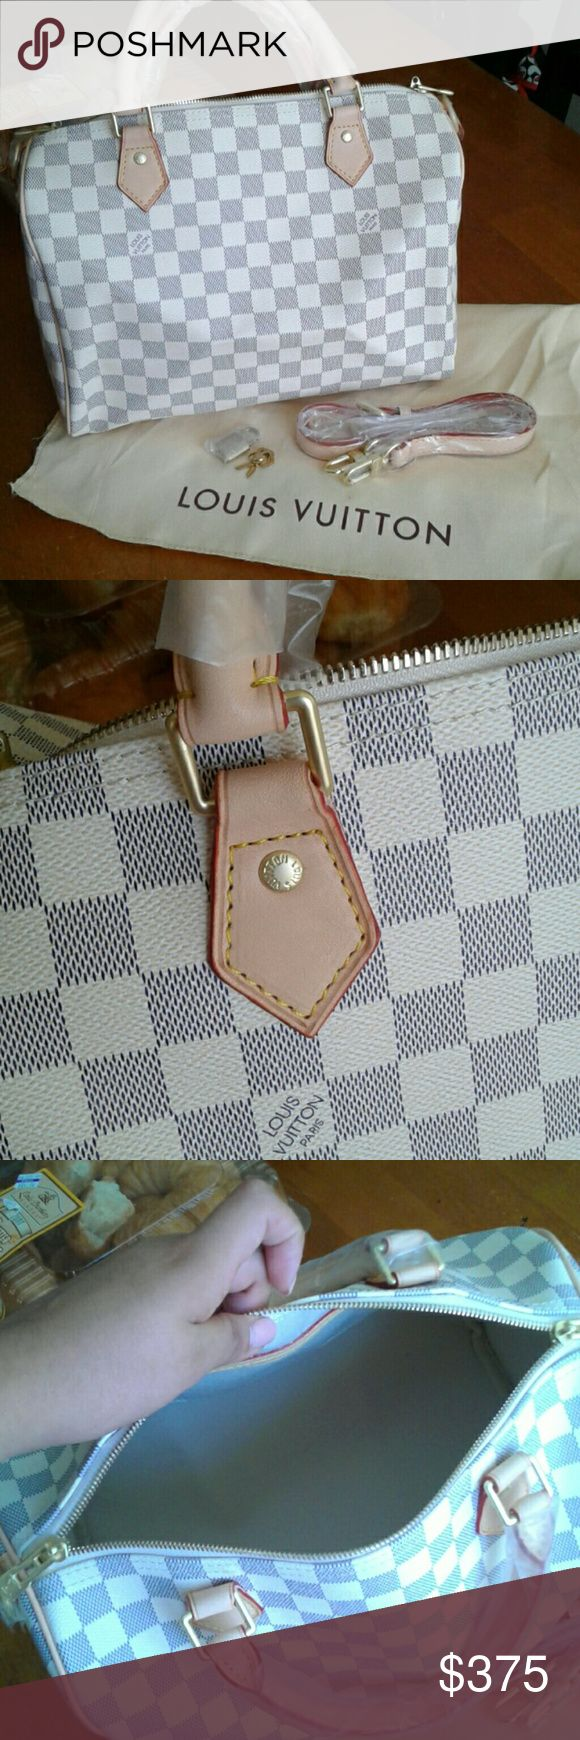 """AZUR SPEEDY BANDOULIERE 💋BRAND NEW GENIUNE LEATHER SPEEDY B. SIZE 30.INCLUDES STRAP, LOCK ,2 KEYS AND DUSTBAG! 💋MADE FROM VACHETTA LEATHER, THAT WILL PATINA BEAUTIFULLY OVER TIME, 1:1 MIRROR REPLICA 💋MADE TO LOOK LIKE THE REAL DEAL, SAME CRAFTMANSHIP AND MATERIALS, WELL MADE!  💓GET THE LOOK WITH OUT PAYING THE PRICE.                                         ❎UNBRANDED❎ ❌THIS IS A FAUX LV PURSE, MEANING NO.N-AU.T.H, PLEASE DO NOT ASK, AS I AM CLEARLY STATING """"NO IT IS NOT!!❌…"""